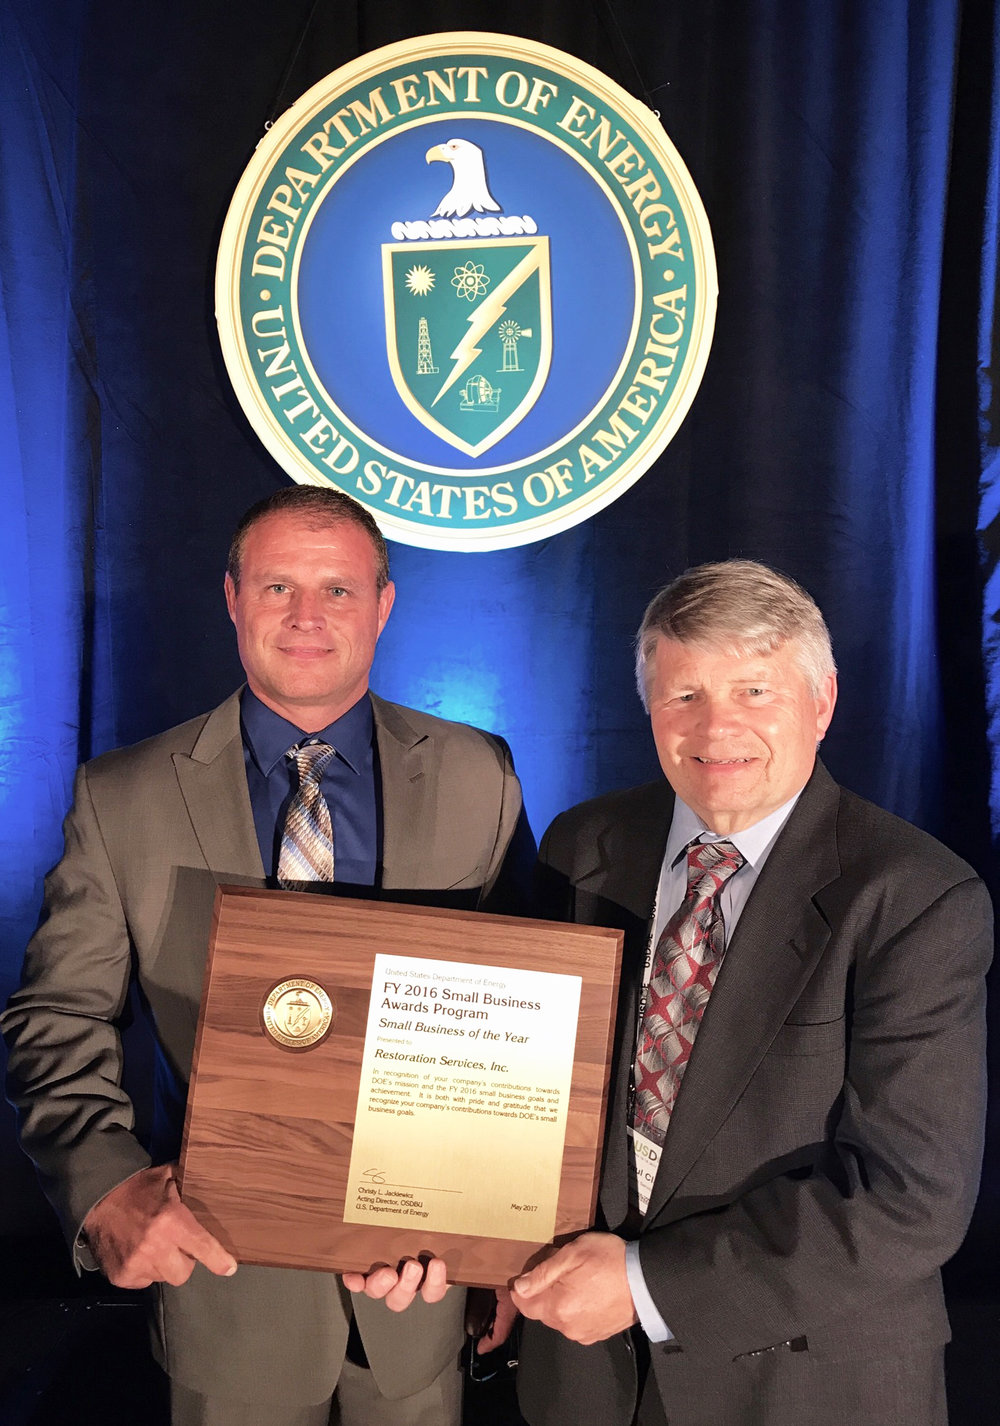 Greg Wilkett, ETS Program Director, and Paul Clay, RSI President, accept the Department of Energy (DOE) Small Business of the Year award for Fiscal Year 2016. RSI was recognized at DOE's 17th Annual Small Business Forum & Expo on May 17, 2017 in Kansas City.